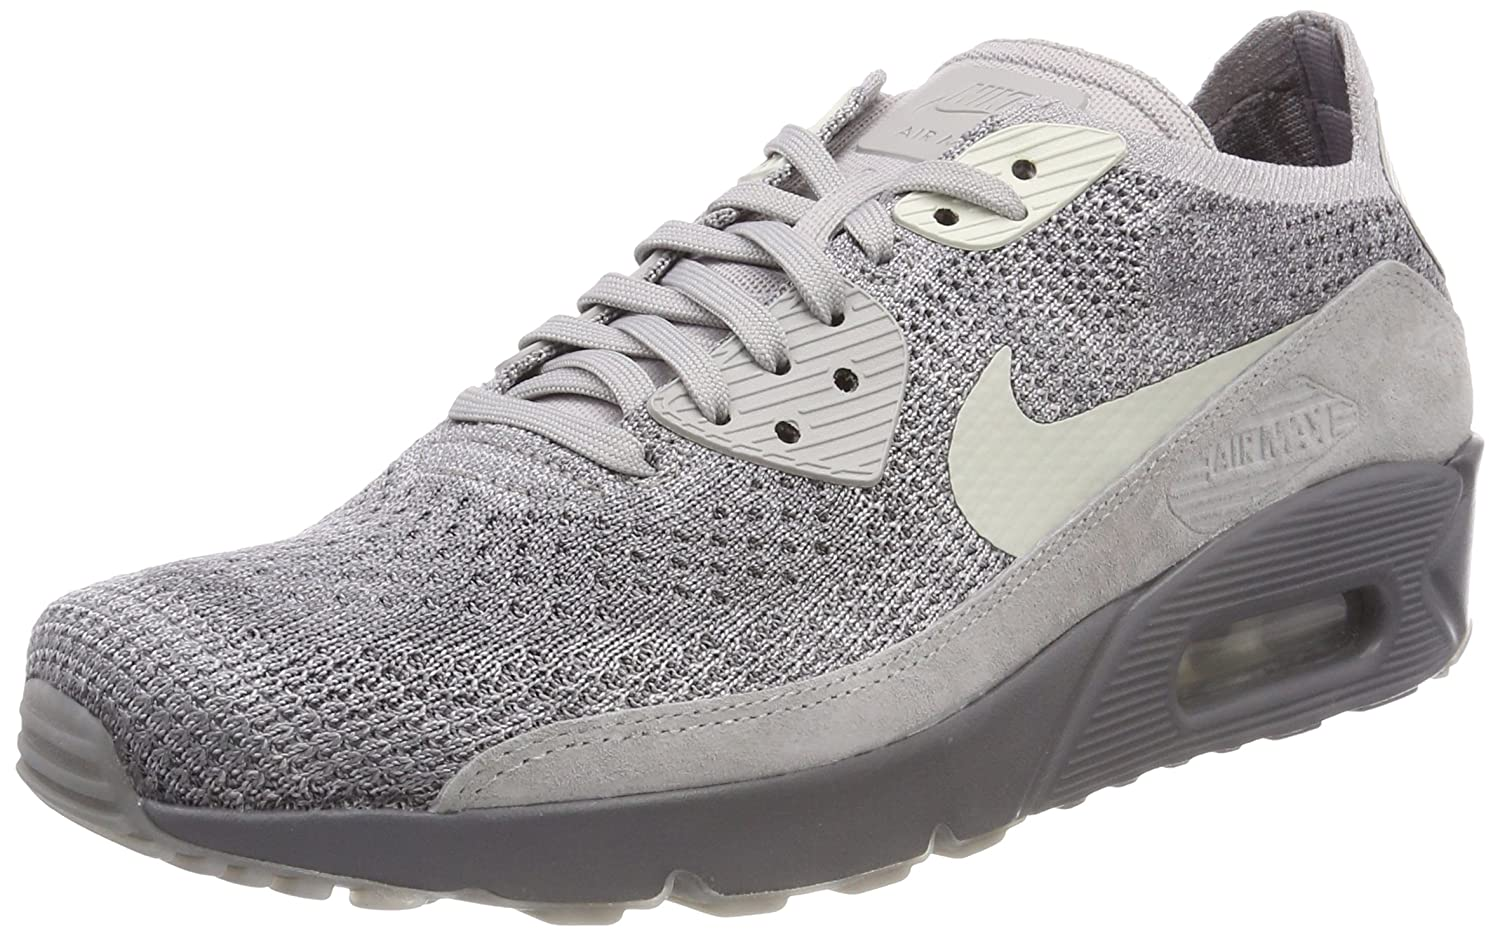 011d2ce297 Amazon.com | NIKE Men's Air Max 90 Ultra 2.0 Flyknit LightBone 875943-007  (Size: 9.5) | Fashion Sneakers